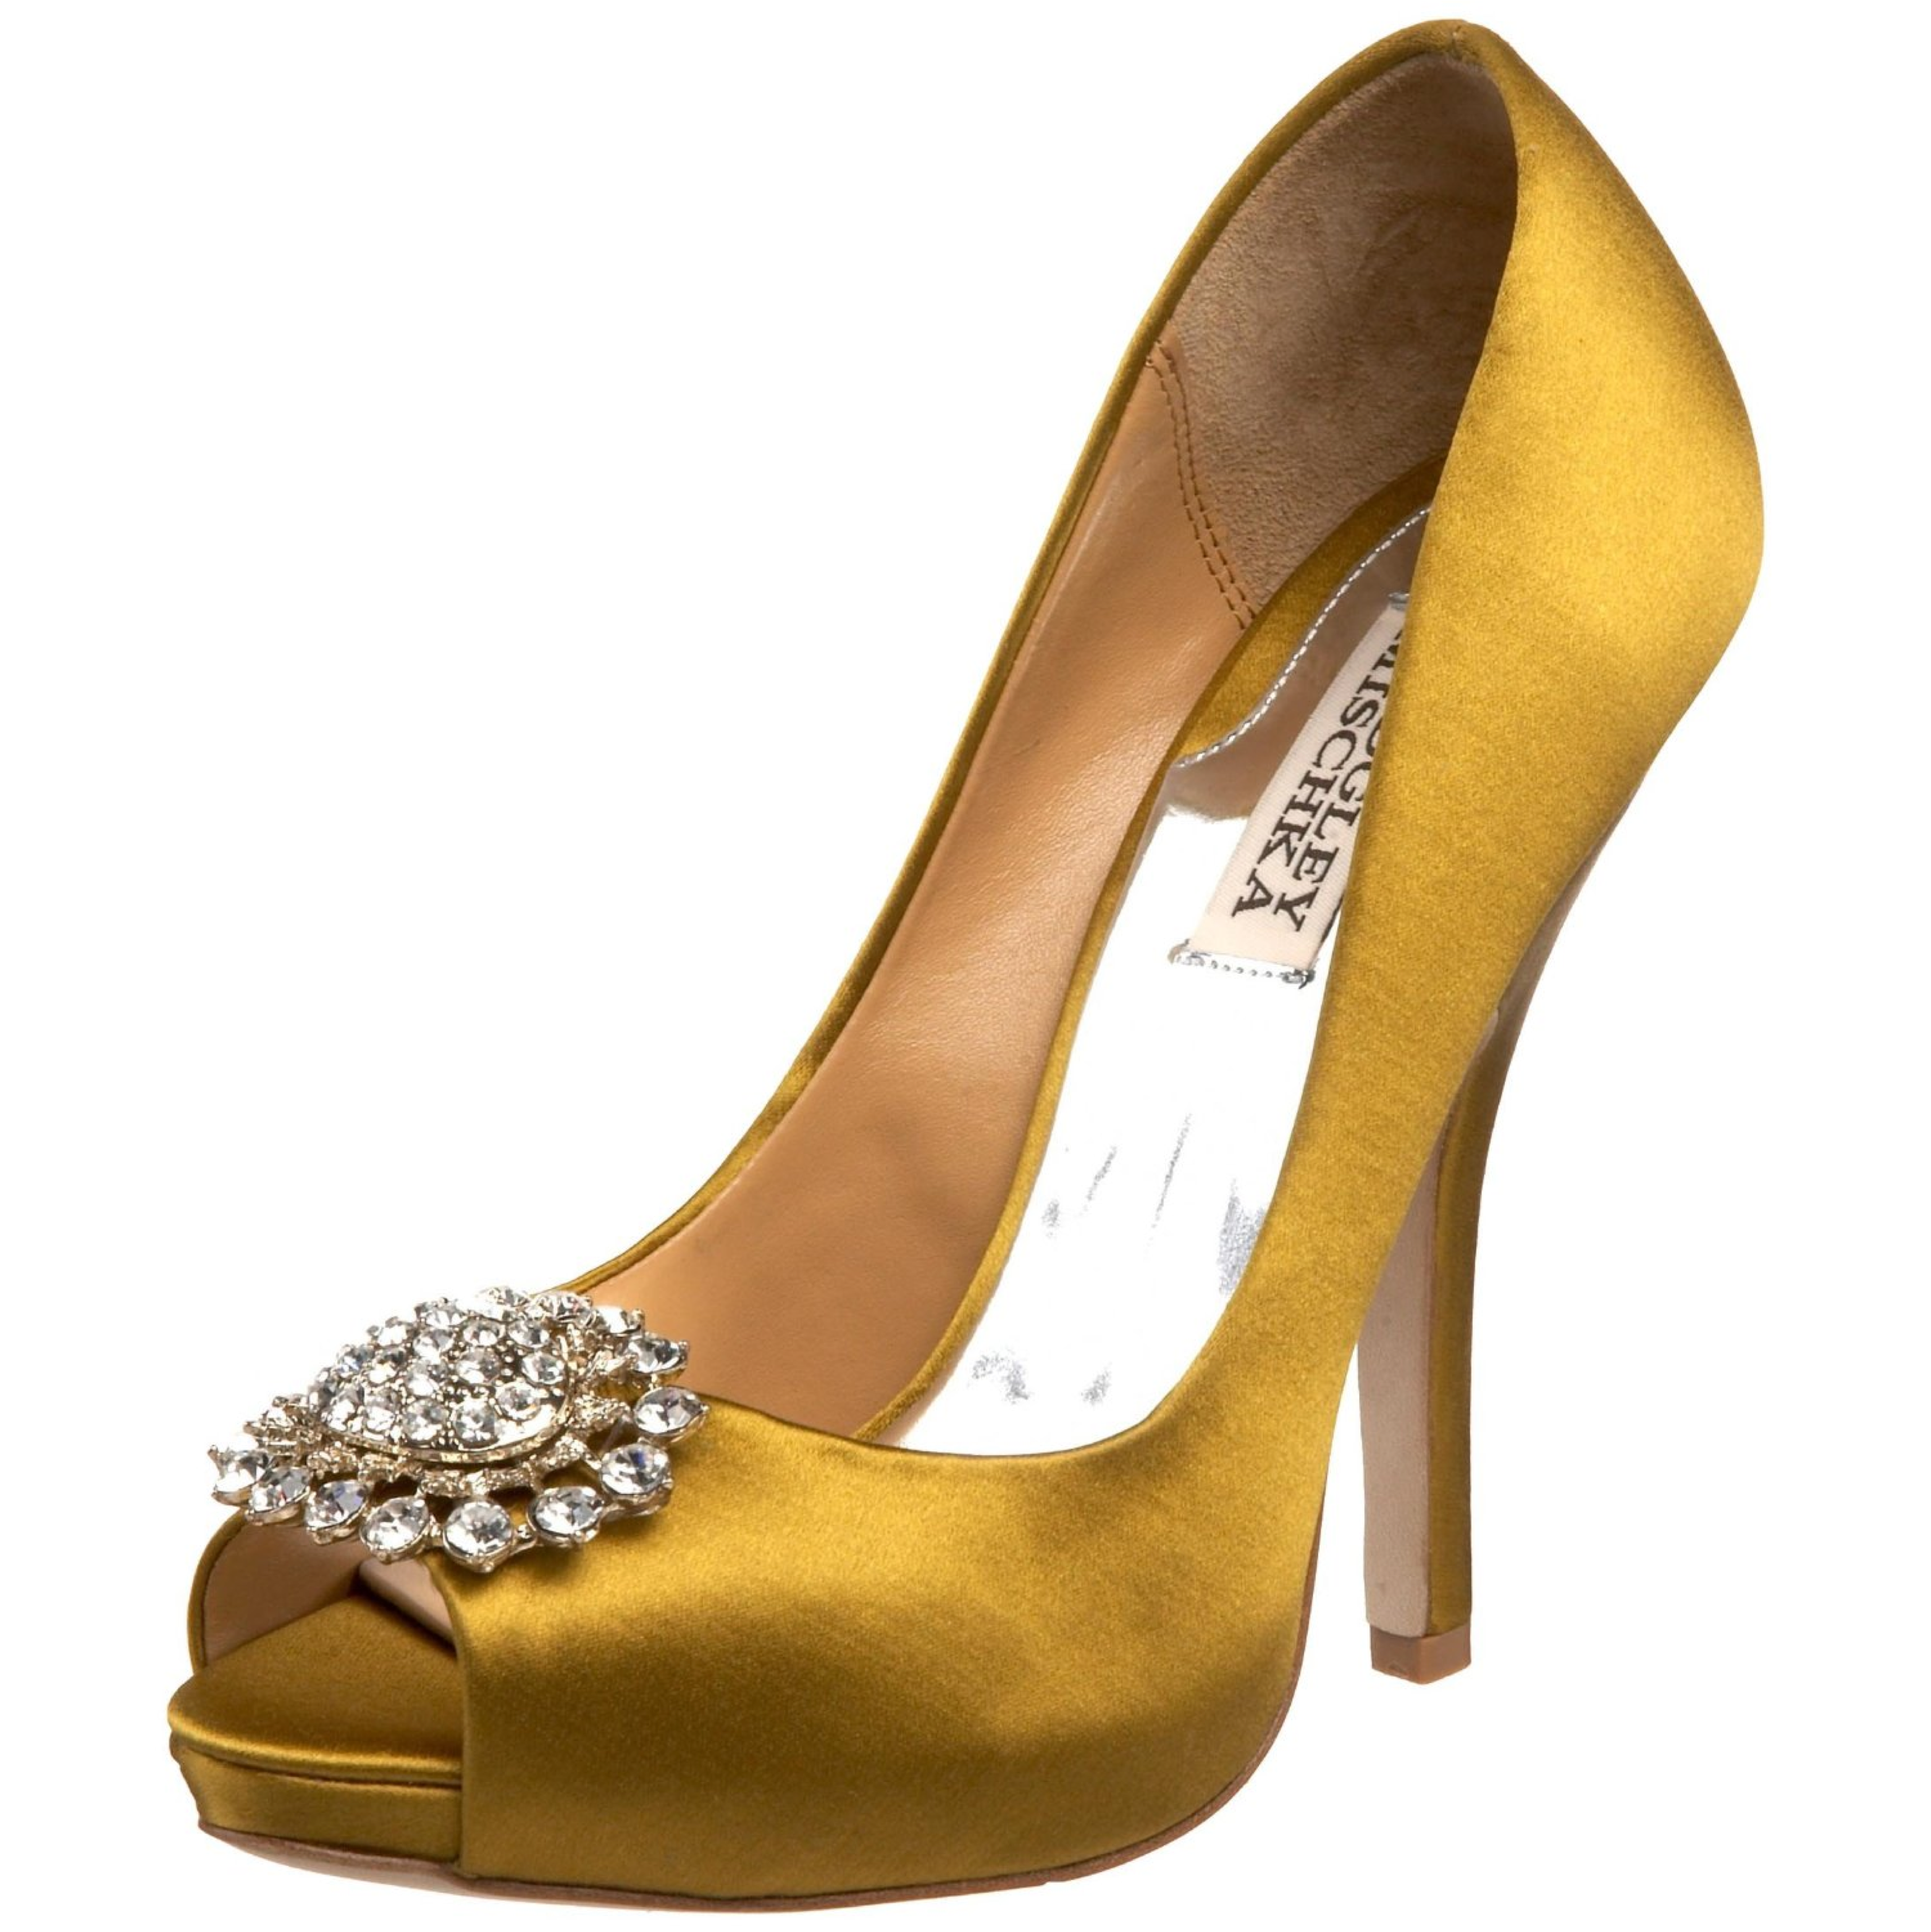 Buy the latest Wedding Shoes For cheap prices, We carry the latest trends in Wedding Shoes to show off that fun and flirty style of yours.